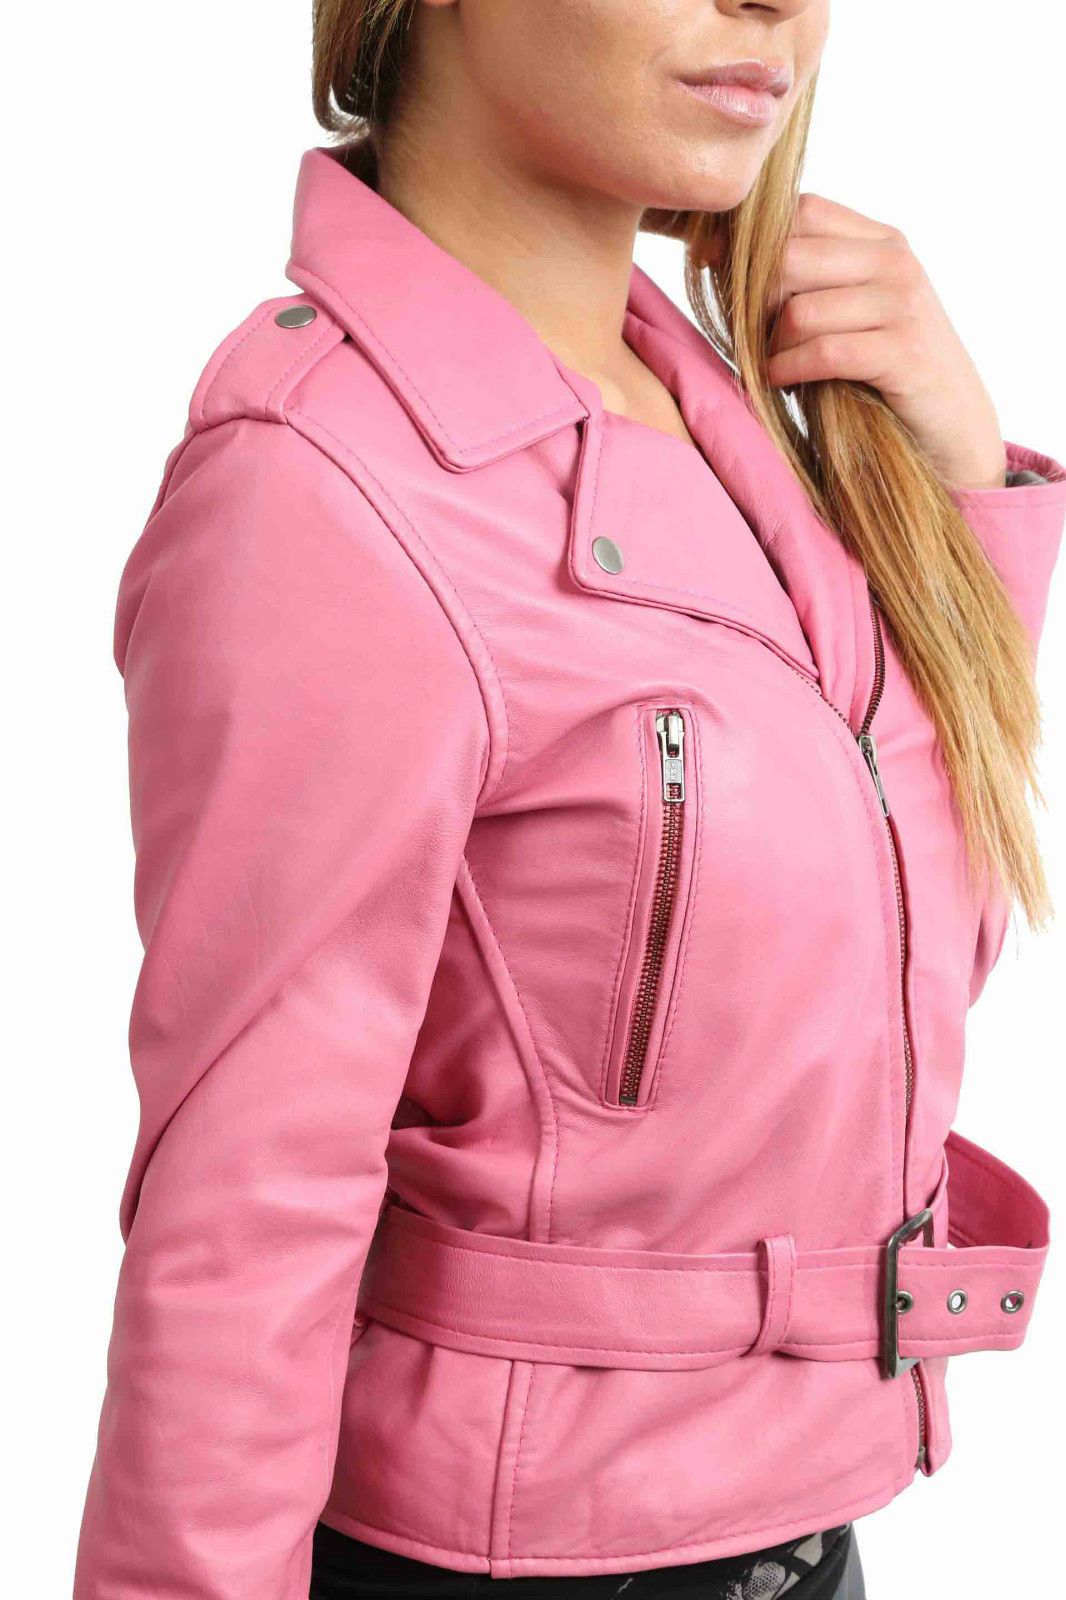 ABBI Womens fitted Soft Real Leather Biker Jacket Pink Funky Sexy ...